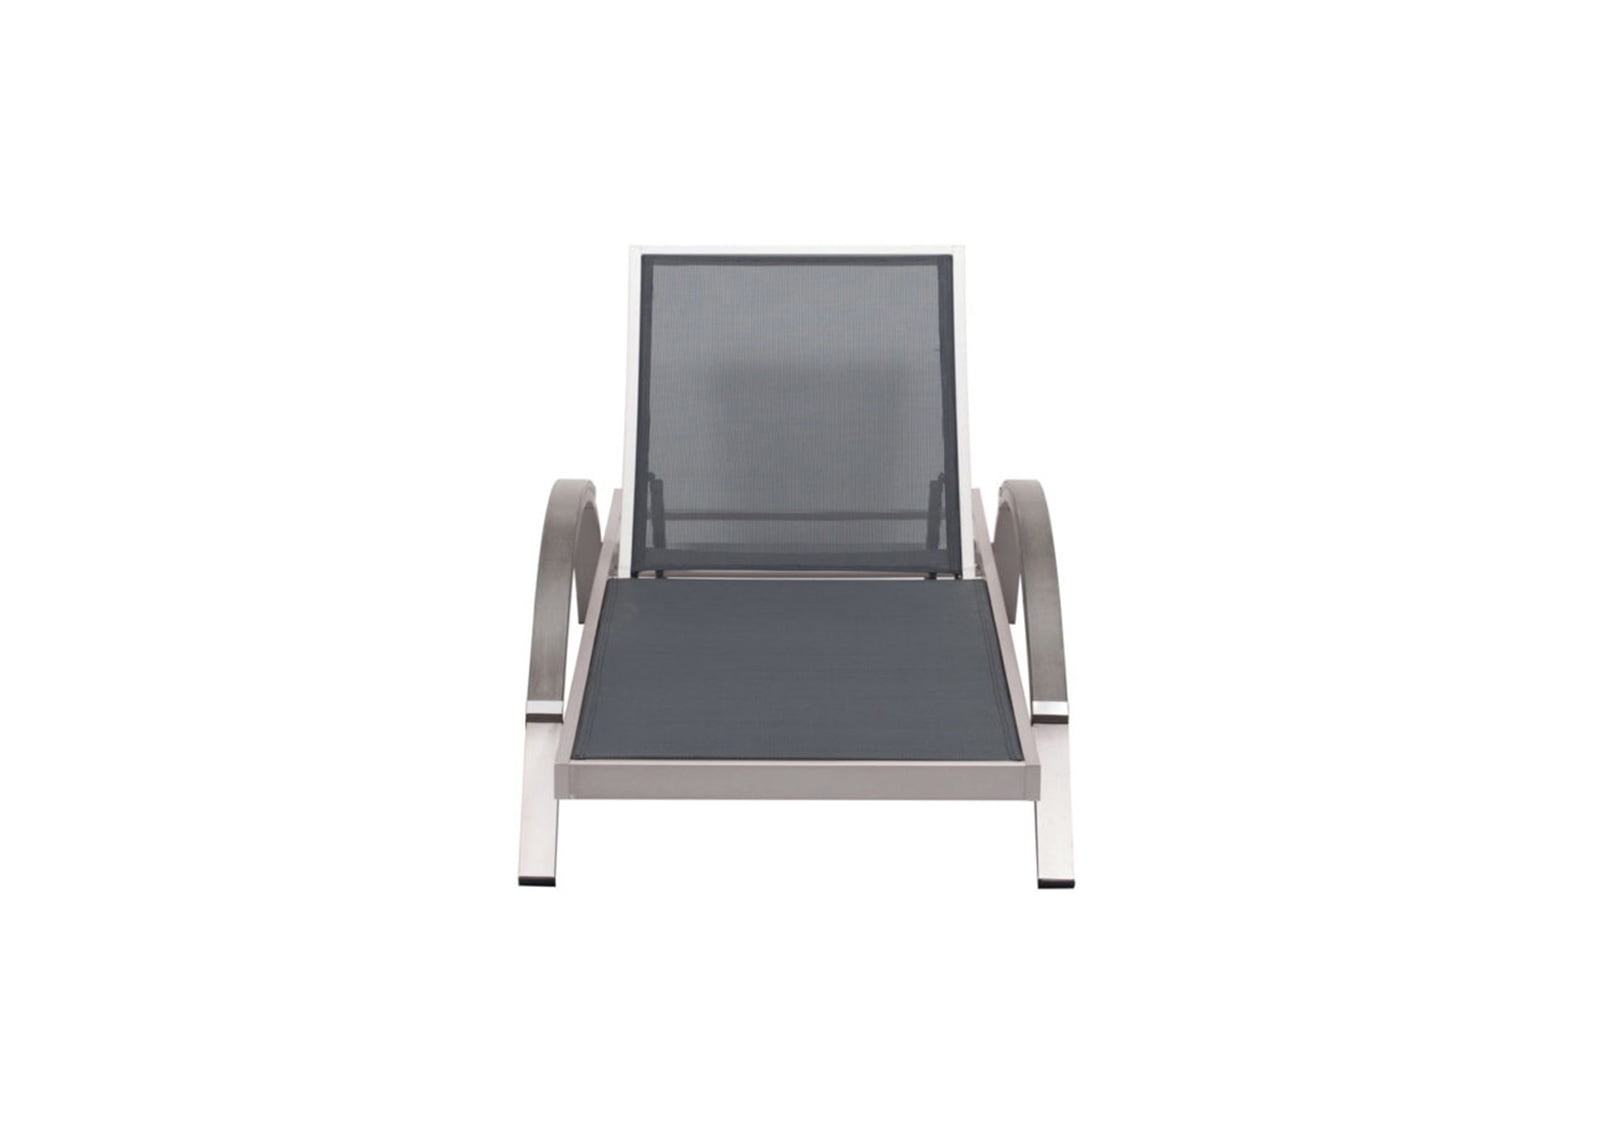 Metropolitan chaise lounge brushed aluminum furnishplus for Chaise aluminium